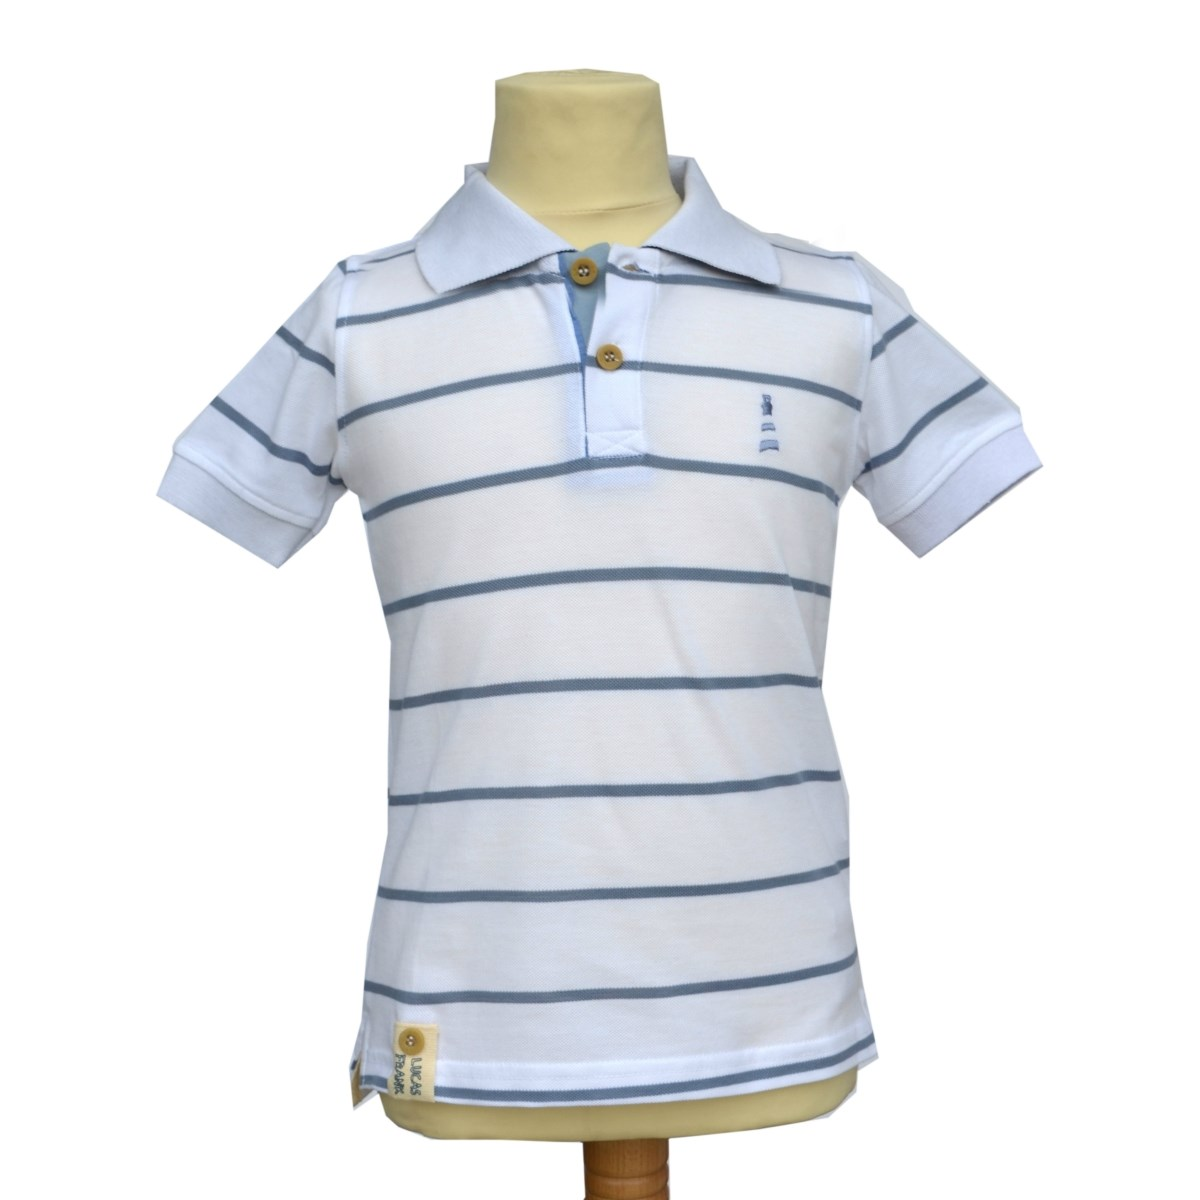 Lucas Frank Sandyhook Polo in White